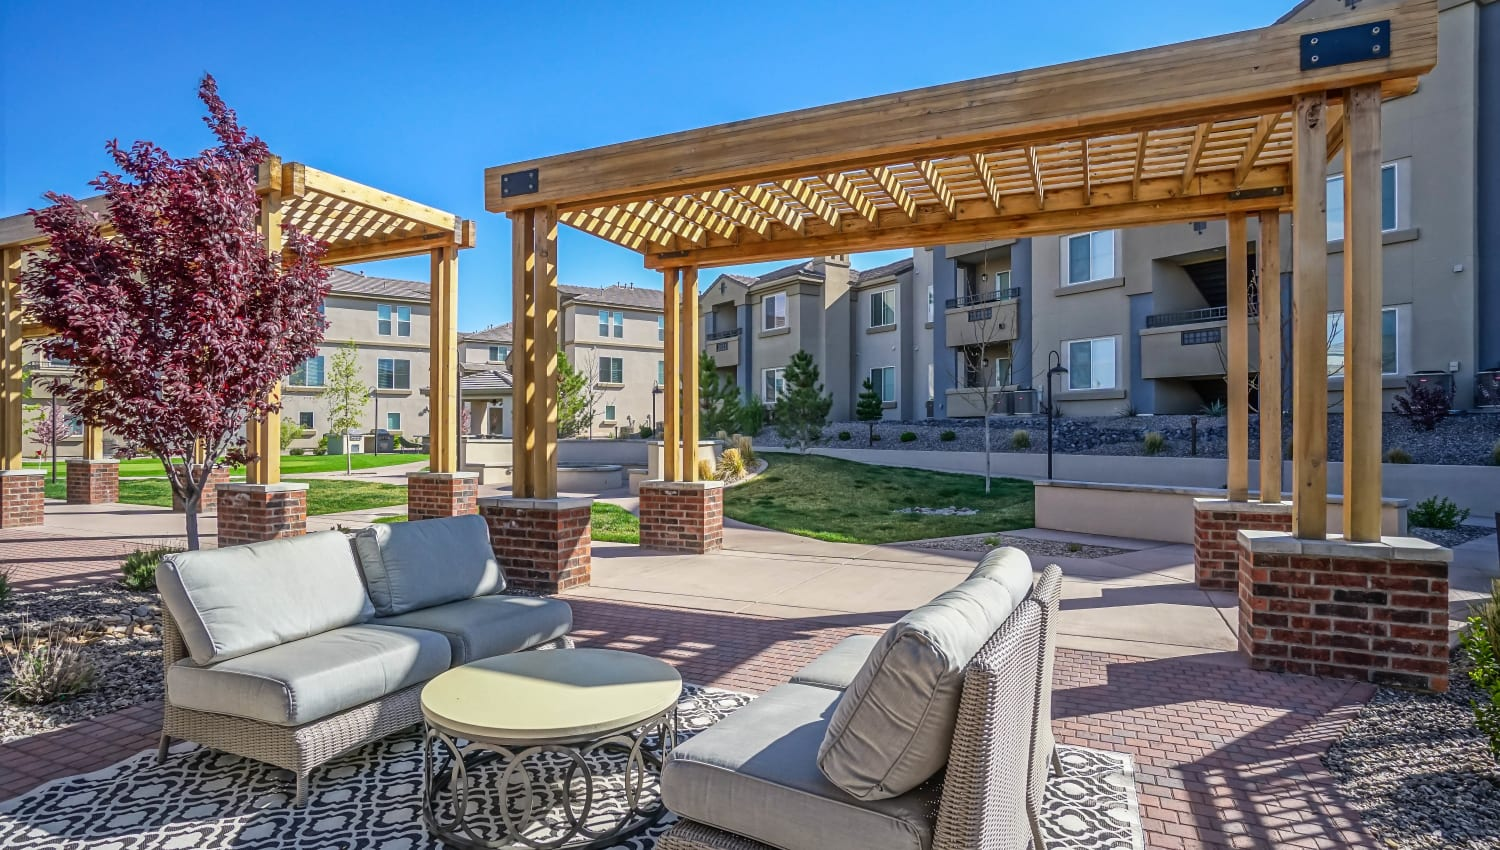 Outdoor lounge with a nearby pergola providing afternoon shade at Olympus Northpoint in Albuquerque, New Mexico